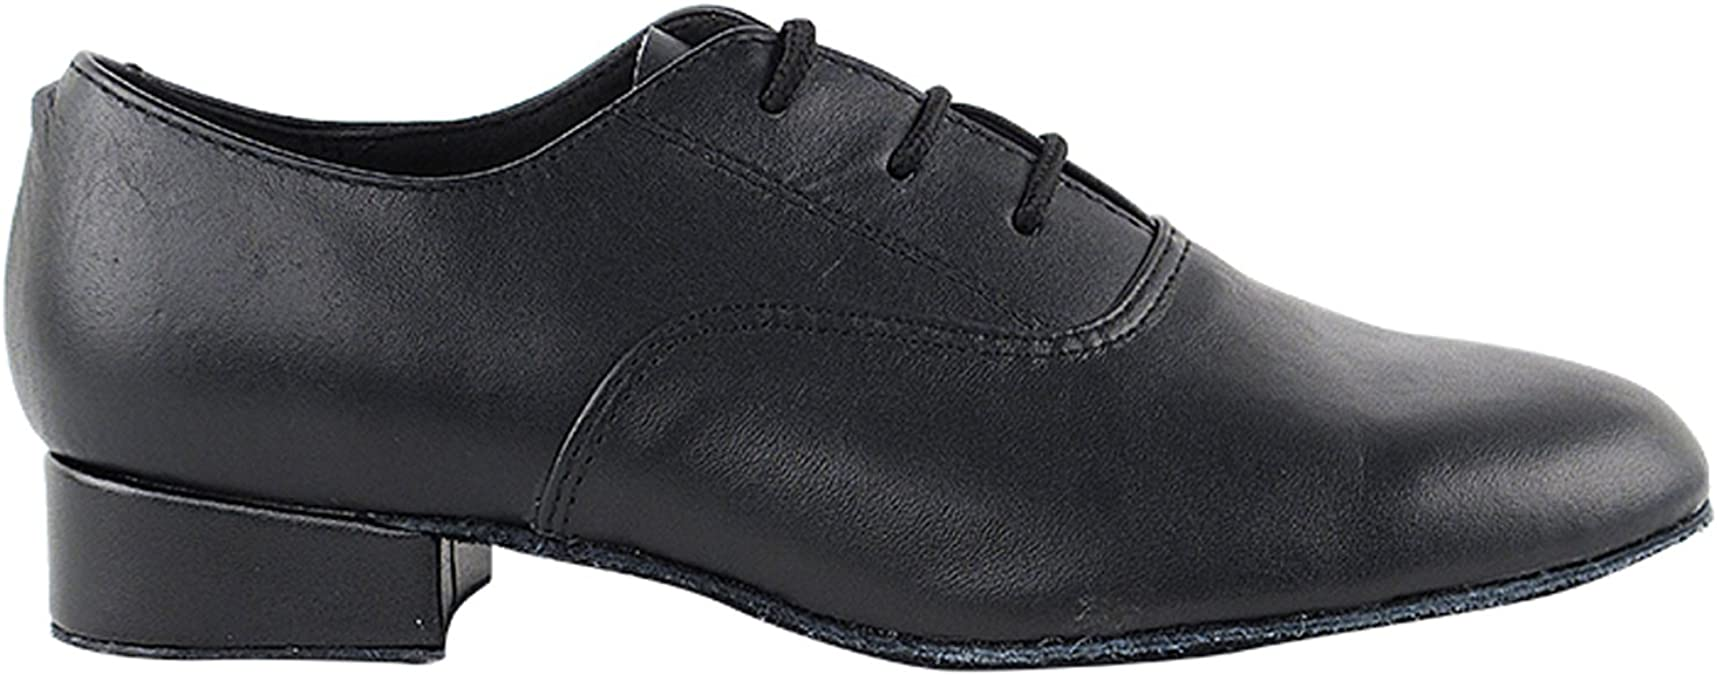 Boys Youth Latin Salsa Very Fine Ballroom Dance Shoes 915108B Black Leather